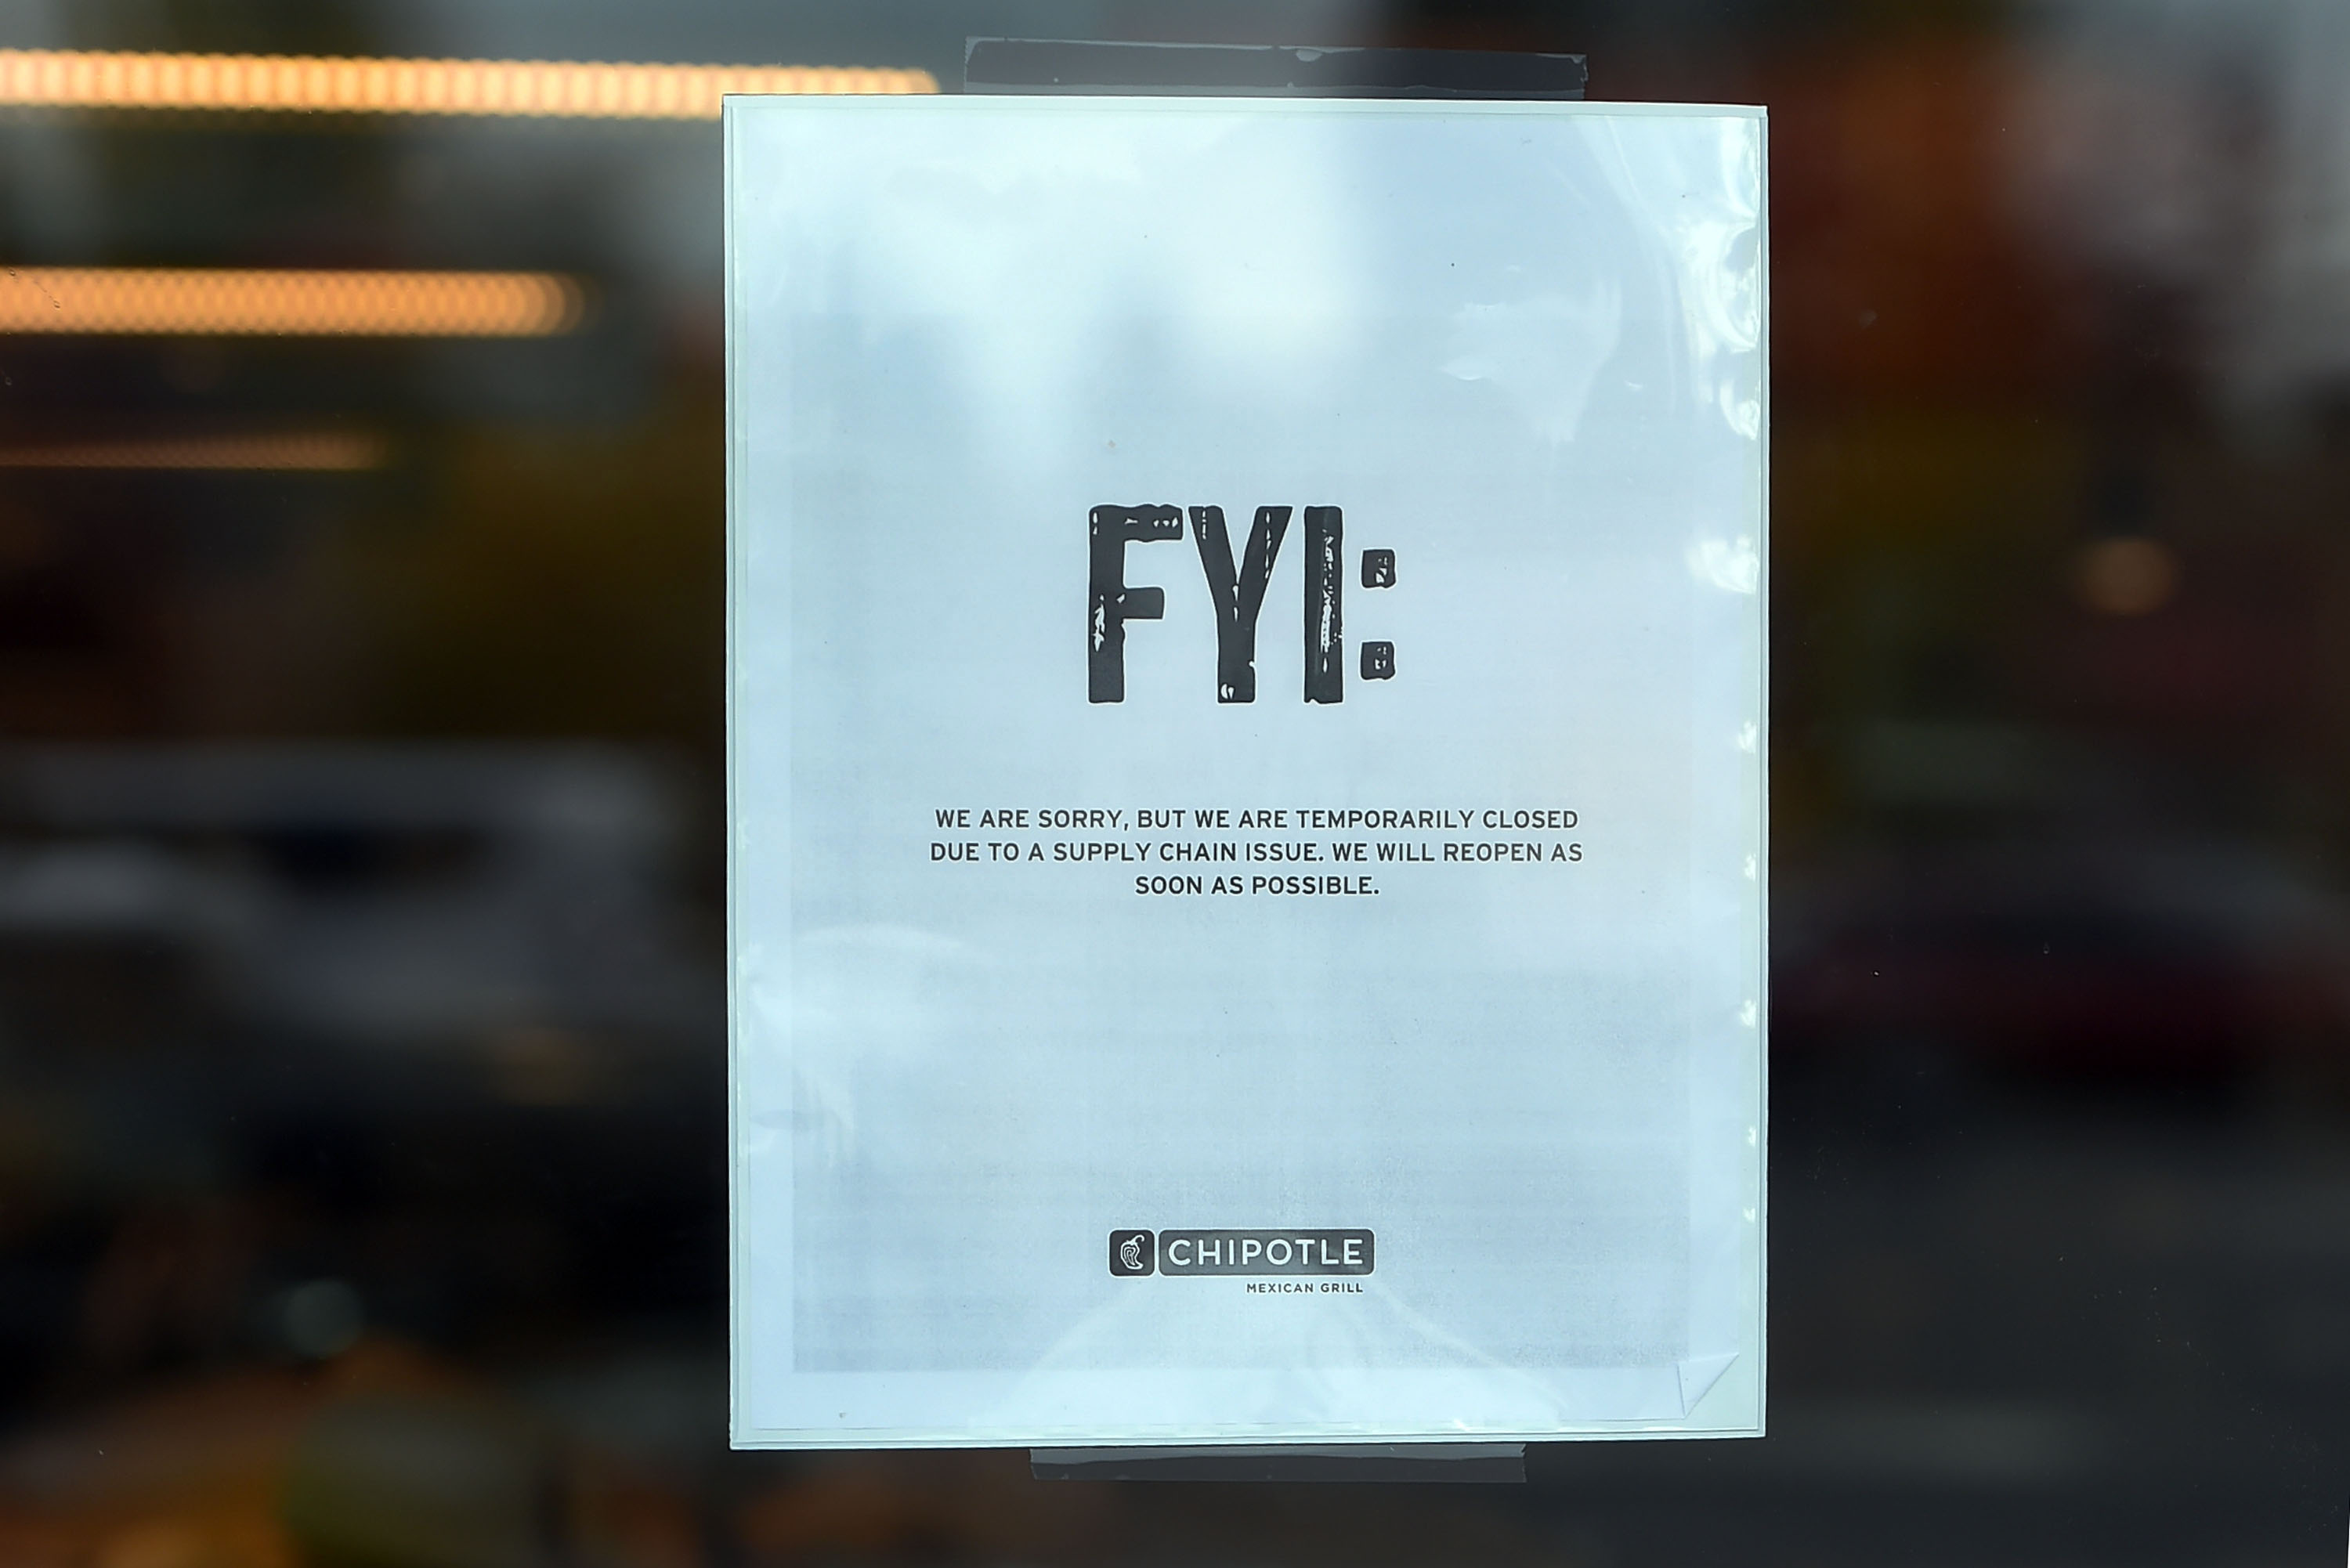 A sign hangs on the door of a Chipotle Mexican Grill store location in on November 3, 2015 in Vancouver, Washington.  Chipotle Mexican Grill is temporarily closing more than 40 restaurants in and around Washignton and Oregon, as health officials investigate an E. coli outbreak.